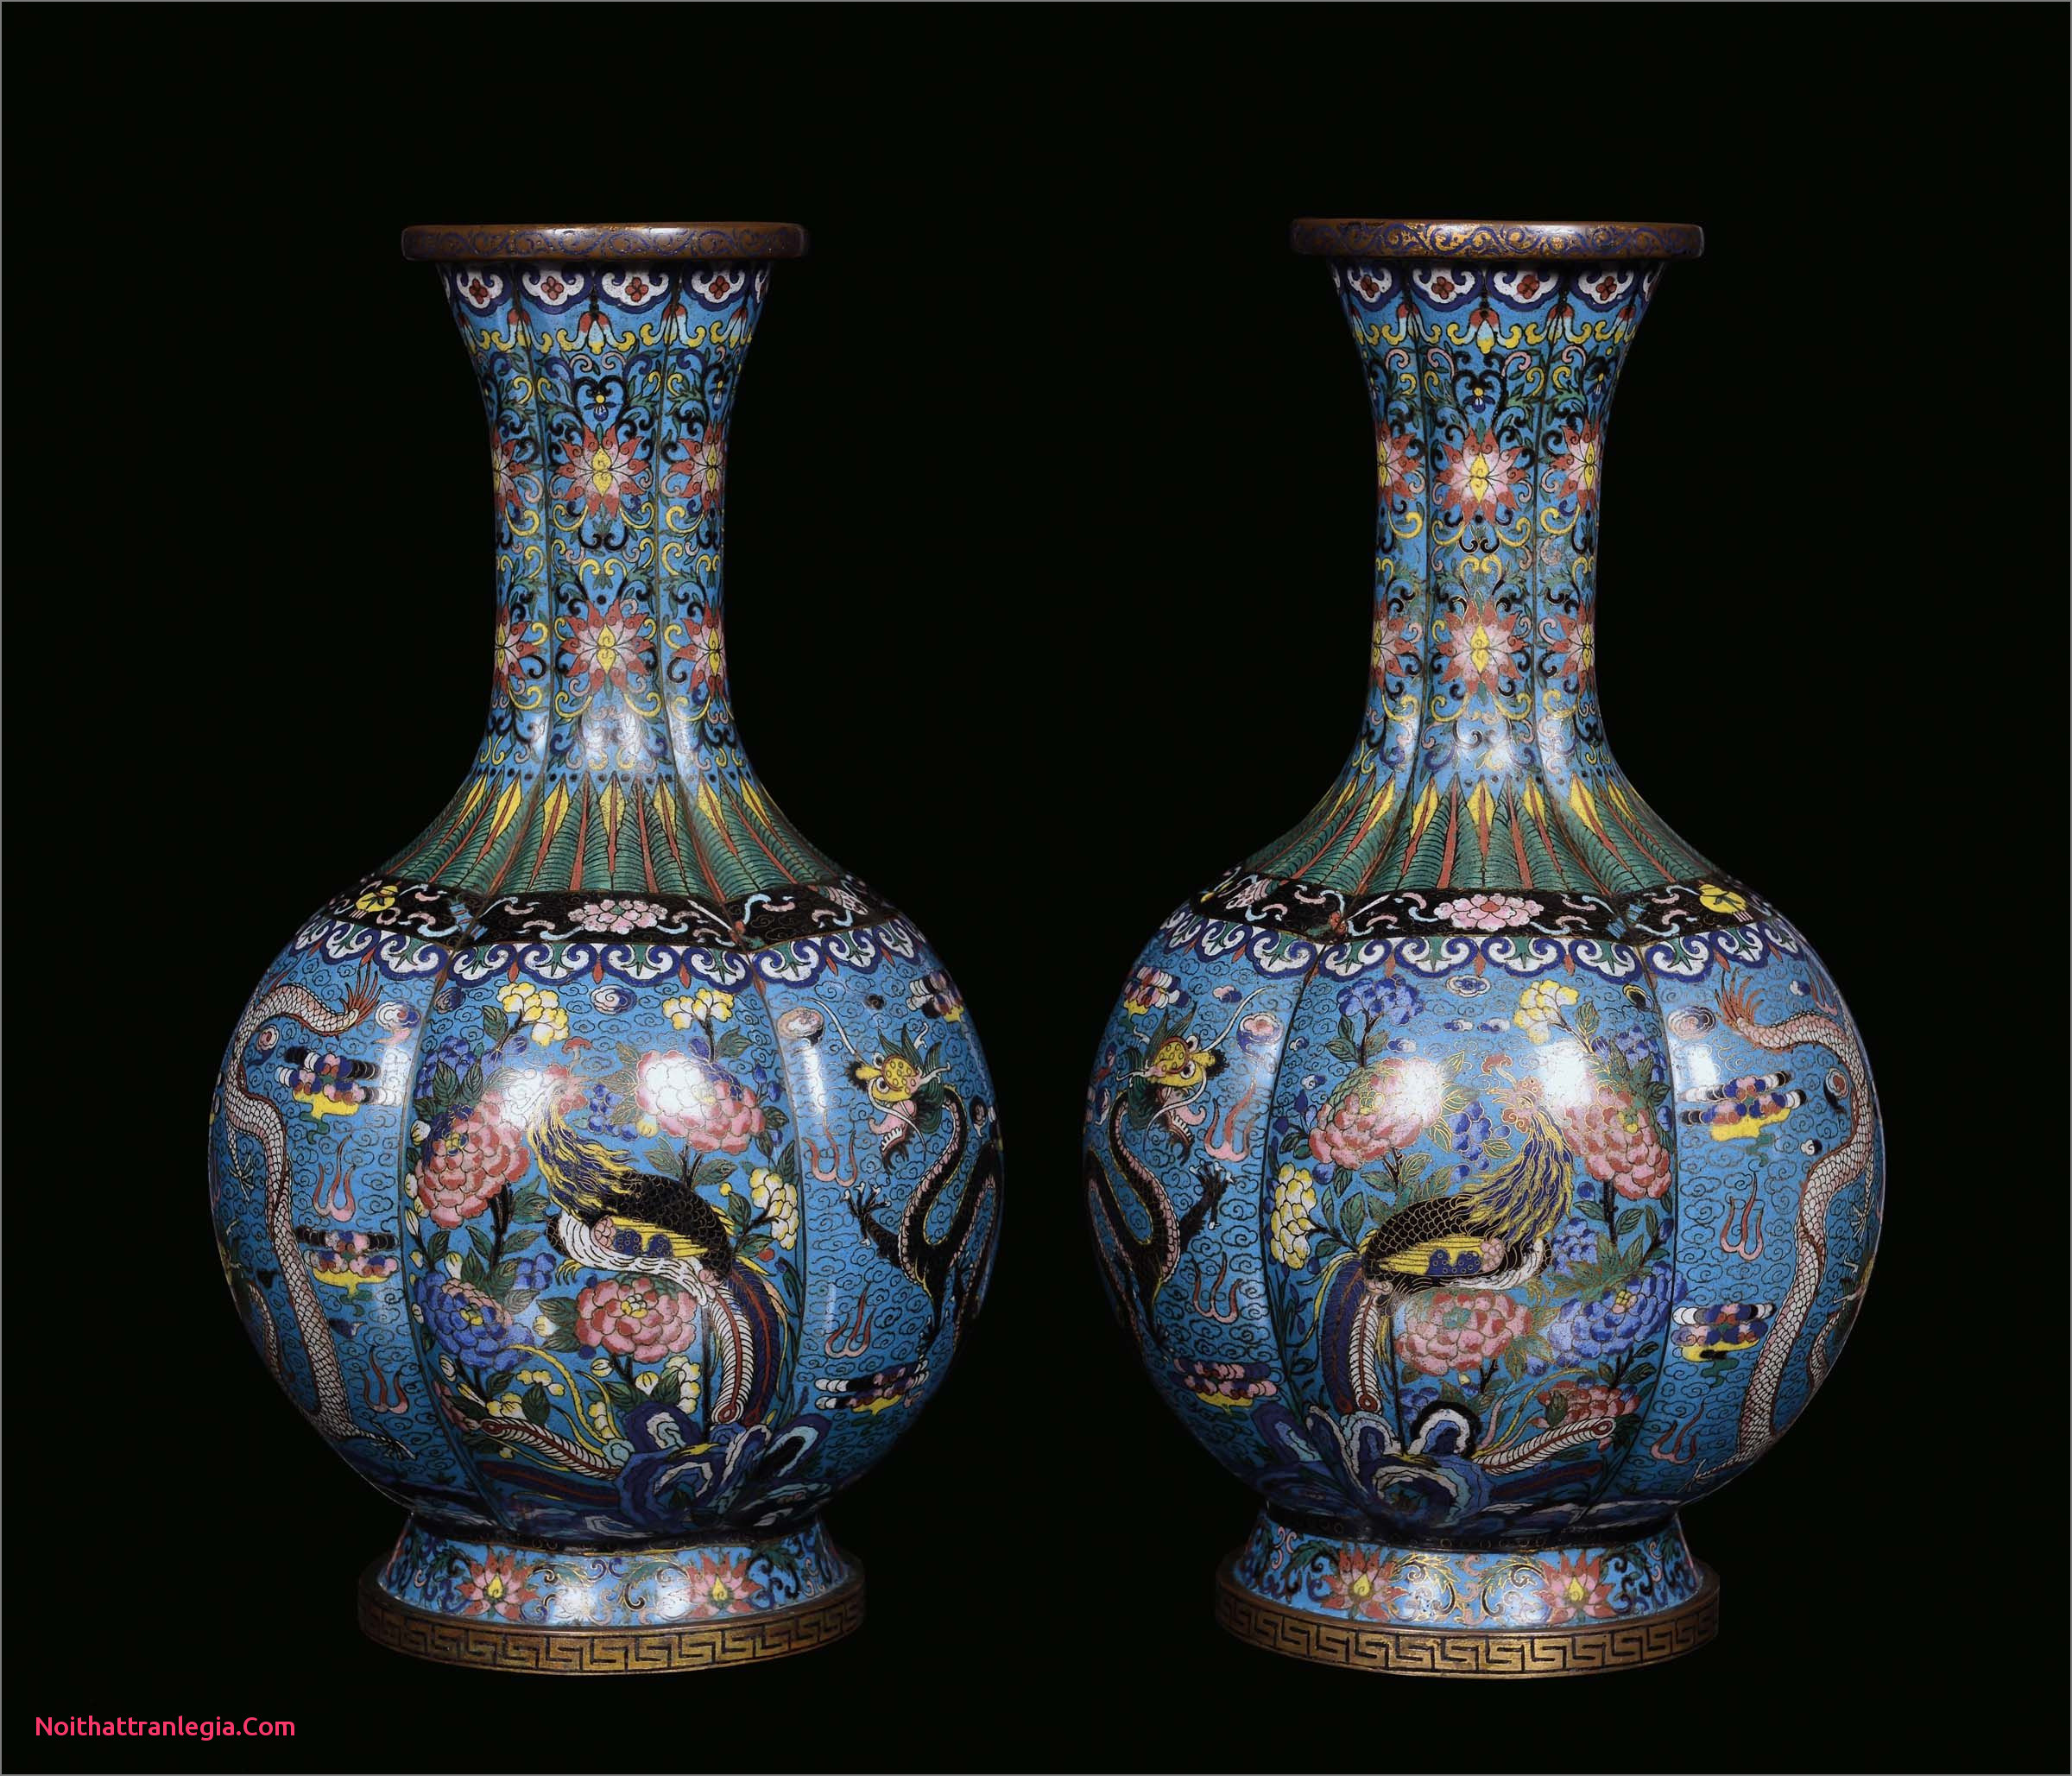 cloisonne vase marks of 20 chinese antique vase noithattranlegia vases design inside a pair of cloisonna vases with naturalistic decoration china qing dynasty guangxu period